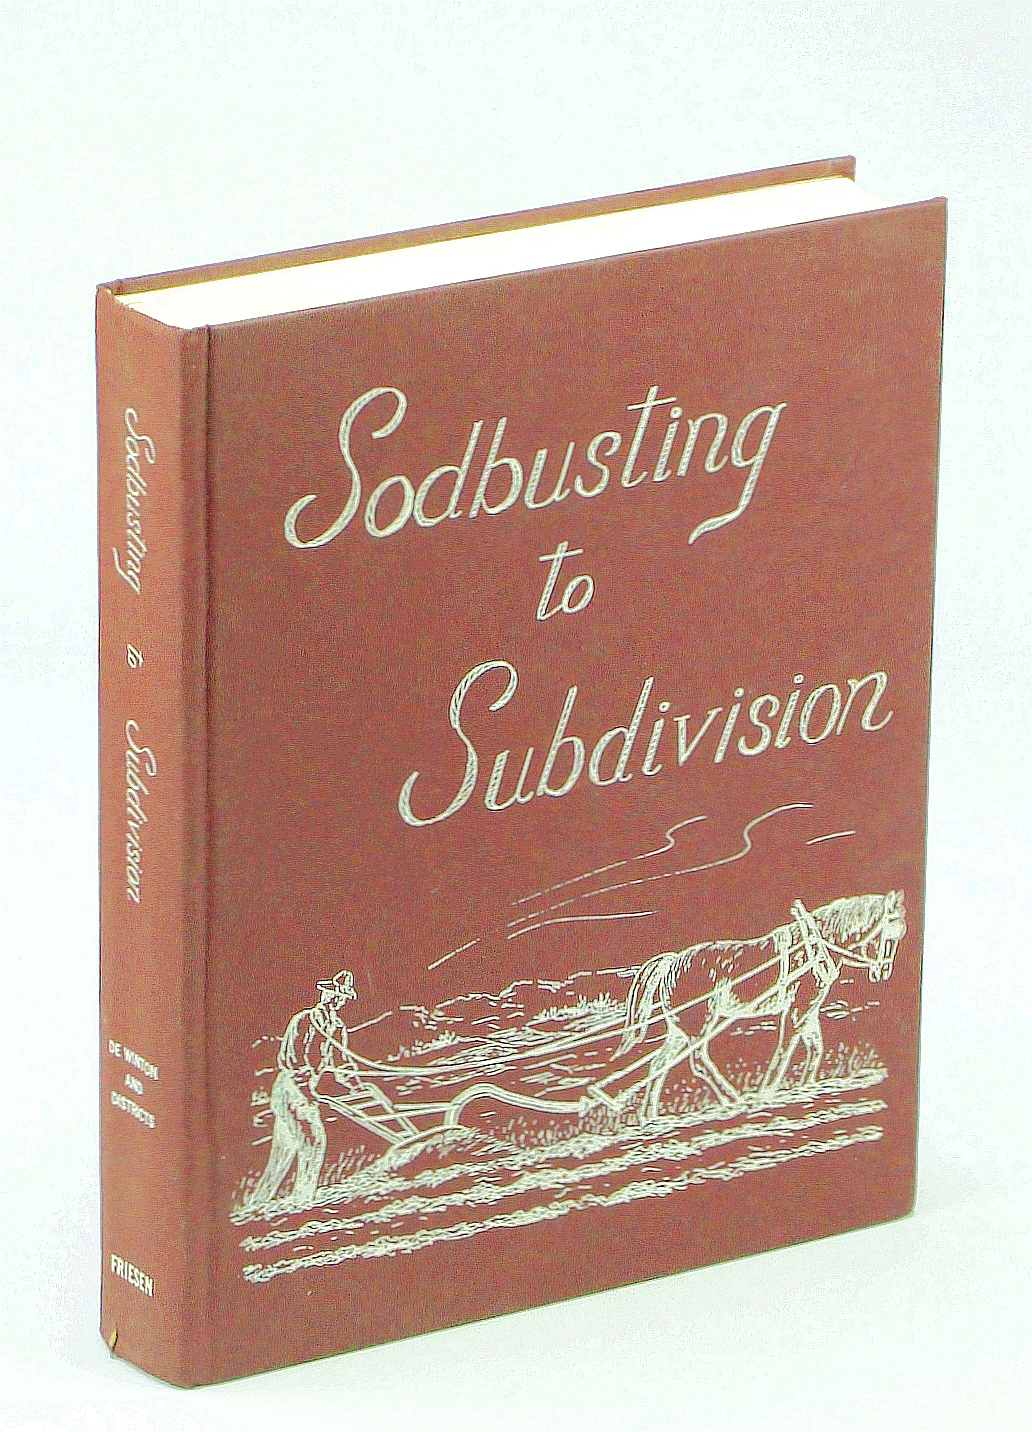 Image for Sodbusting to subdivision